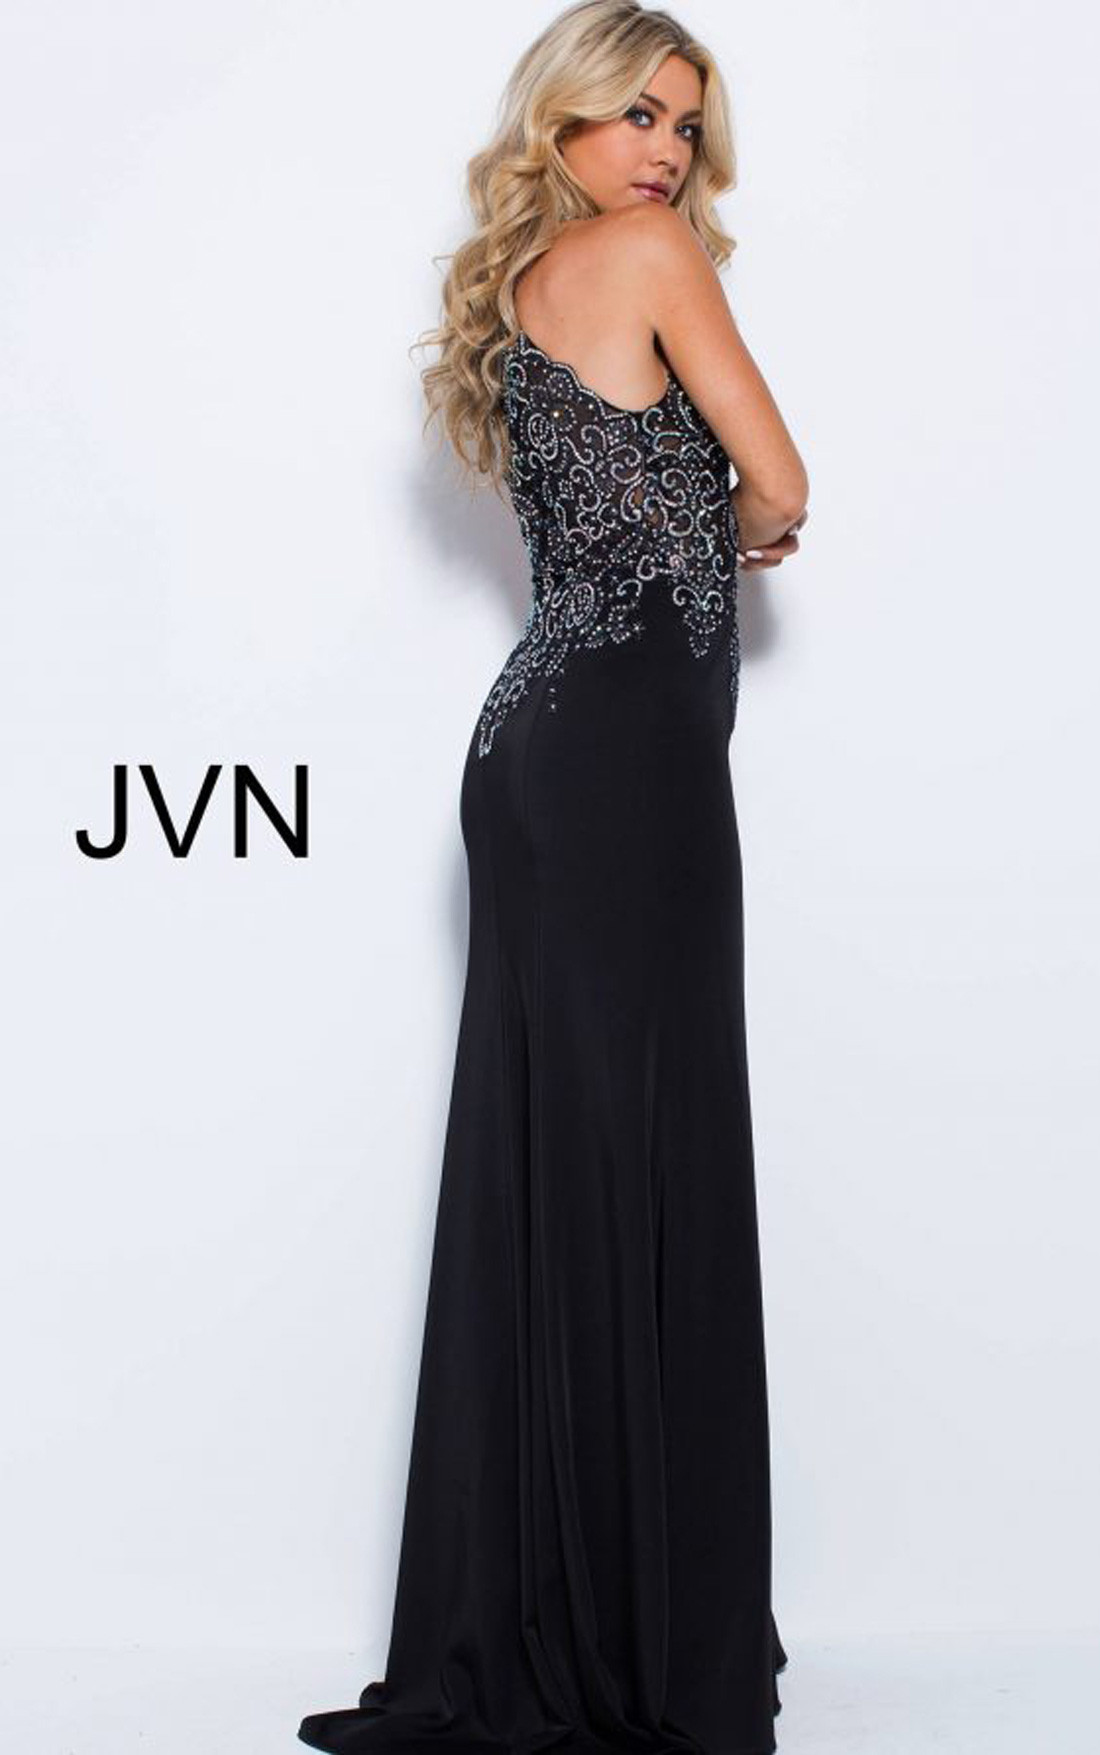 Jovani - Black Maxi Evening Dress (JVN51320)